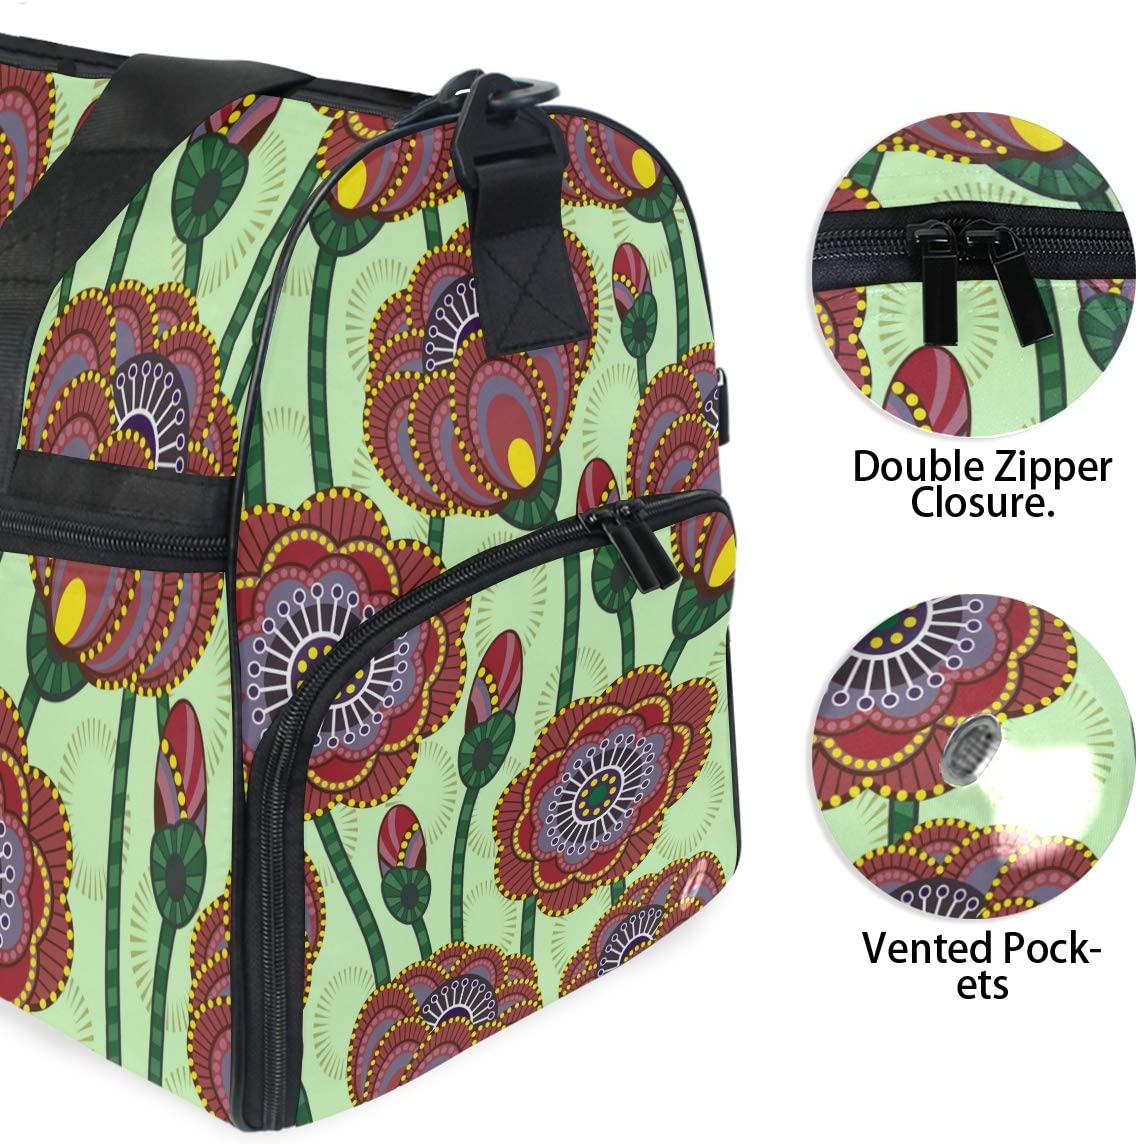 WIHVE Gym Bag Poppy Flower Floral Sports Travel Duffel Bag with Shoe Compartment